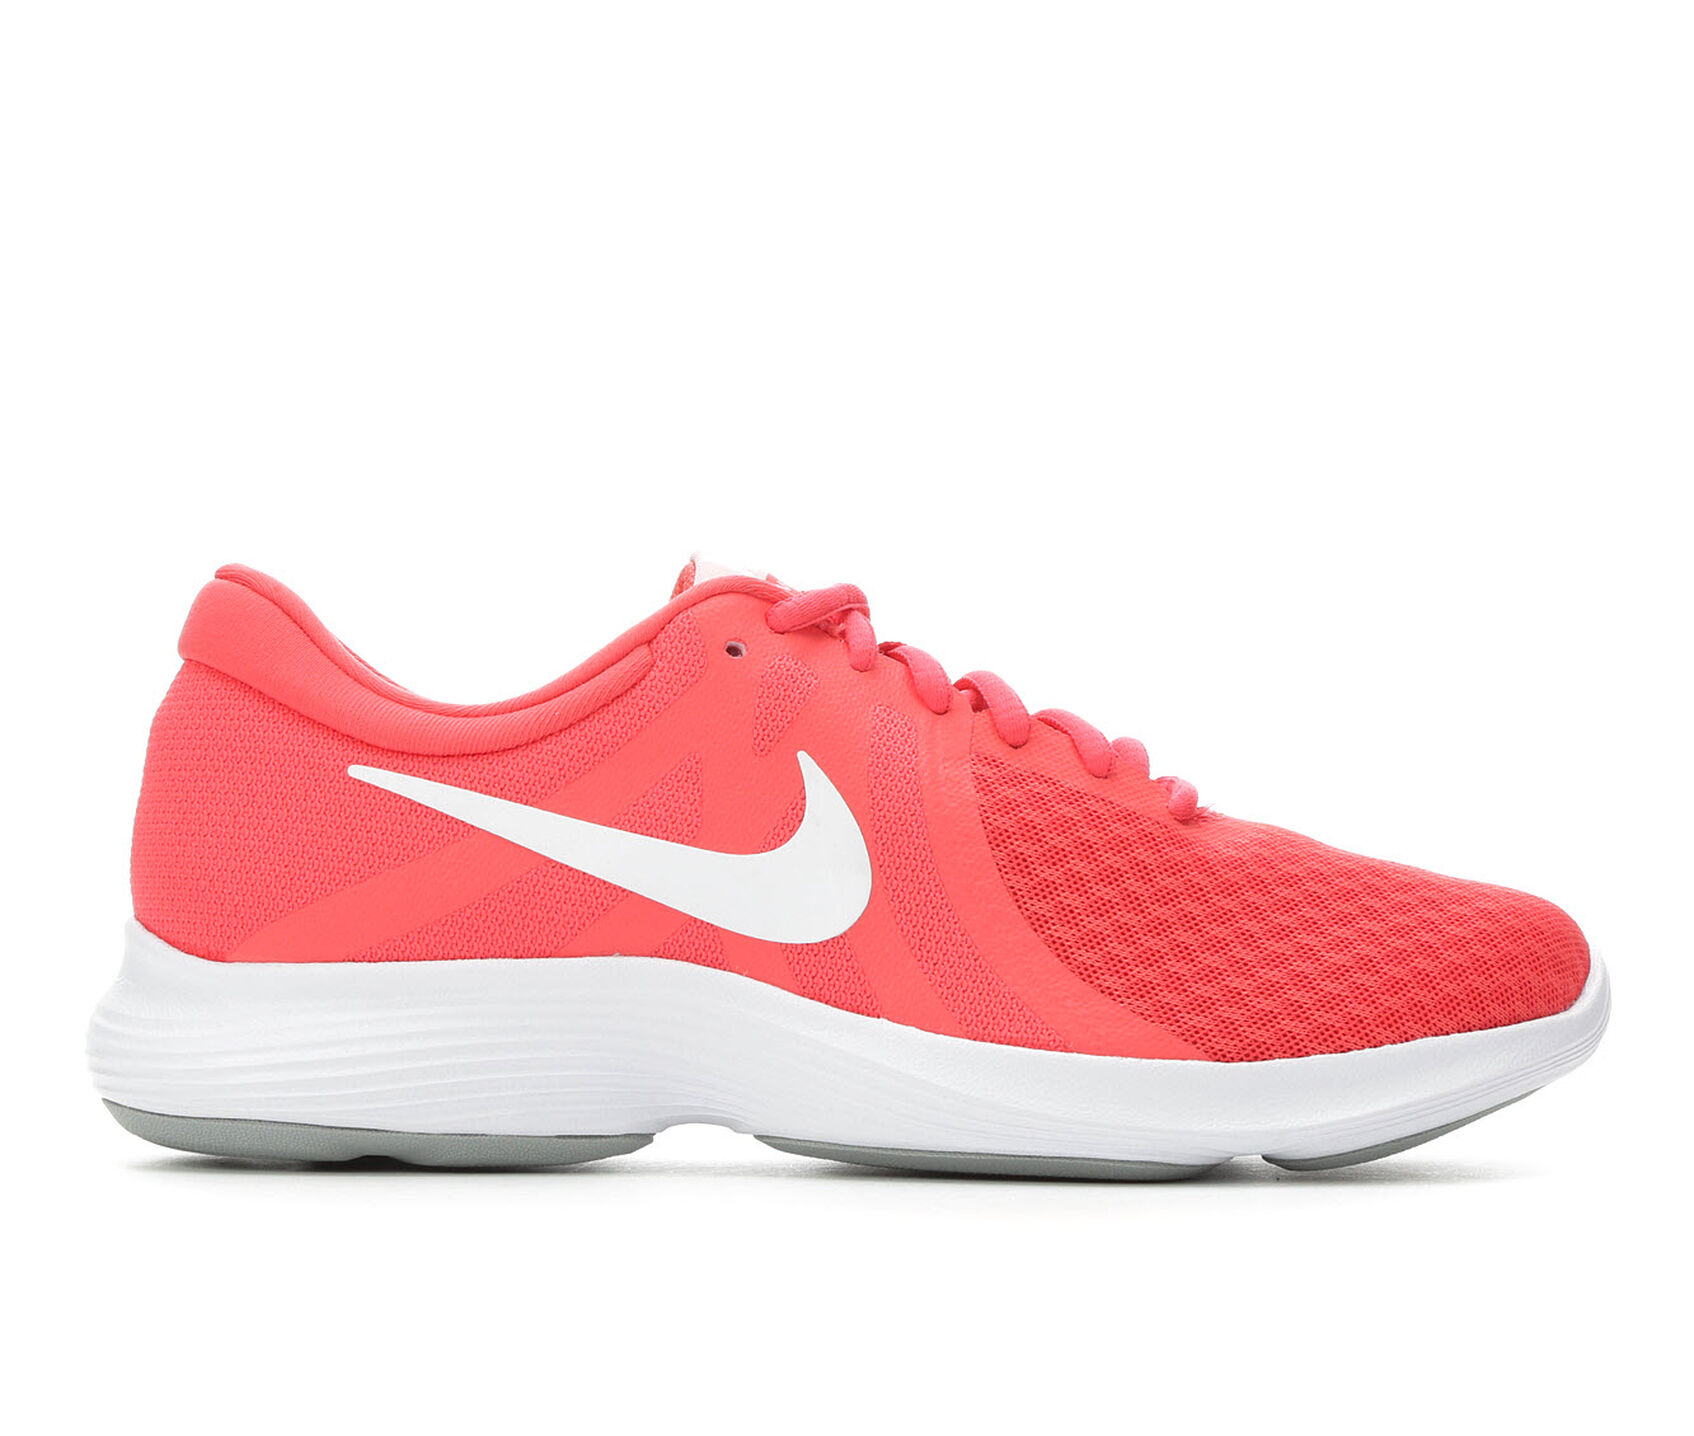 959ada132fc01 ... Nike Revolution 4 Running Shoes. Previous